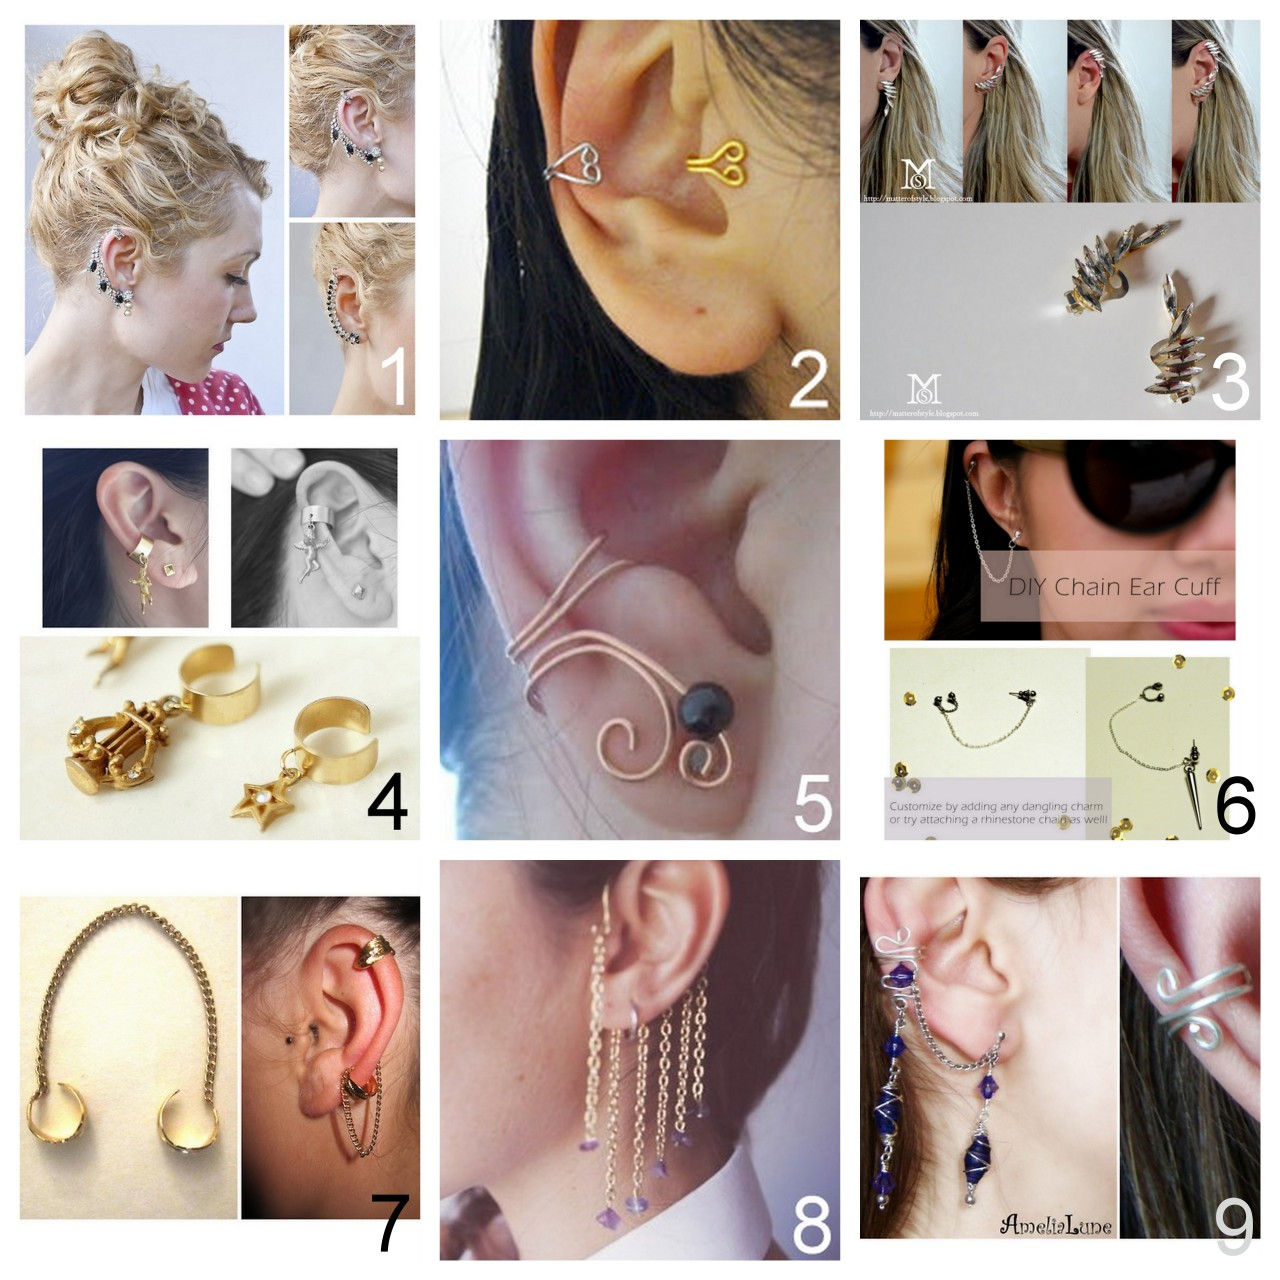 truebluemeandyou:  Roundup of Nine DIY Ear Cuffs I've posted.  Rhinestone Ear Cuff Tutorial from Transient Expression here. Wire Ear Cuffs Two Ways Tutorial from Essas Frescurites here. Easy Earrings to Ear Cuffs Tutorial from A Matter of Style here. Ear Cuffs with Charms Tutorial from Hello Whimsy Blog here. Ear Cuff found at Little Bit Crafting using a tutorial from Cut Out + Keep here. Ear Cuff Tutorial form My Little Secrets here. Feather Charms and Chain Ear Cuff Tutorial from Prudence and Austere here. Ear Cuff with Chains and Beads Video Tutorial from Boat People here. Basic Ear Cuff (right) and then Expanded Version with Wrapped Wire Earrings (left) Tutorial from Amelia Lune here.